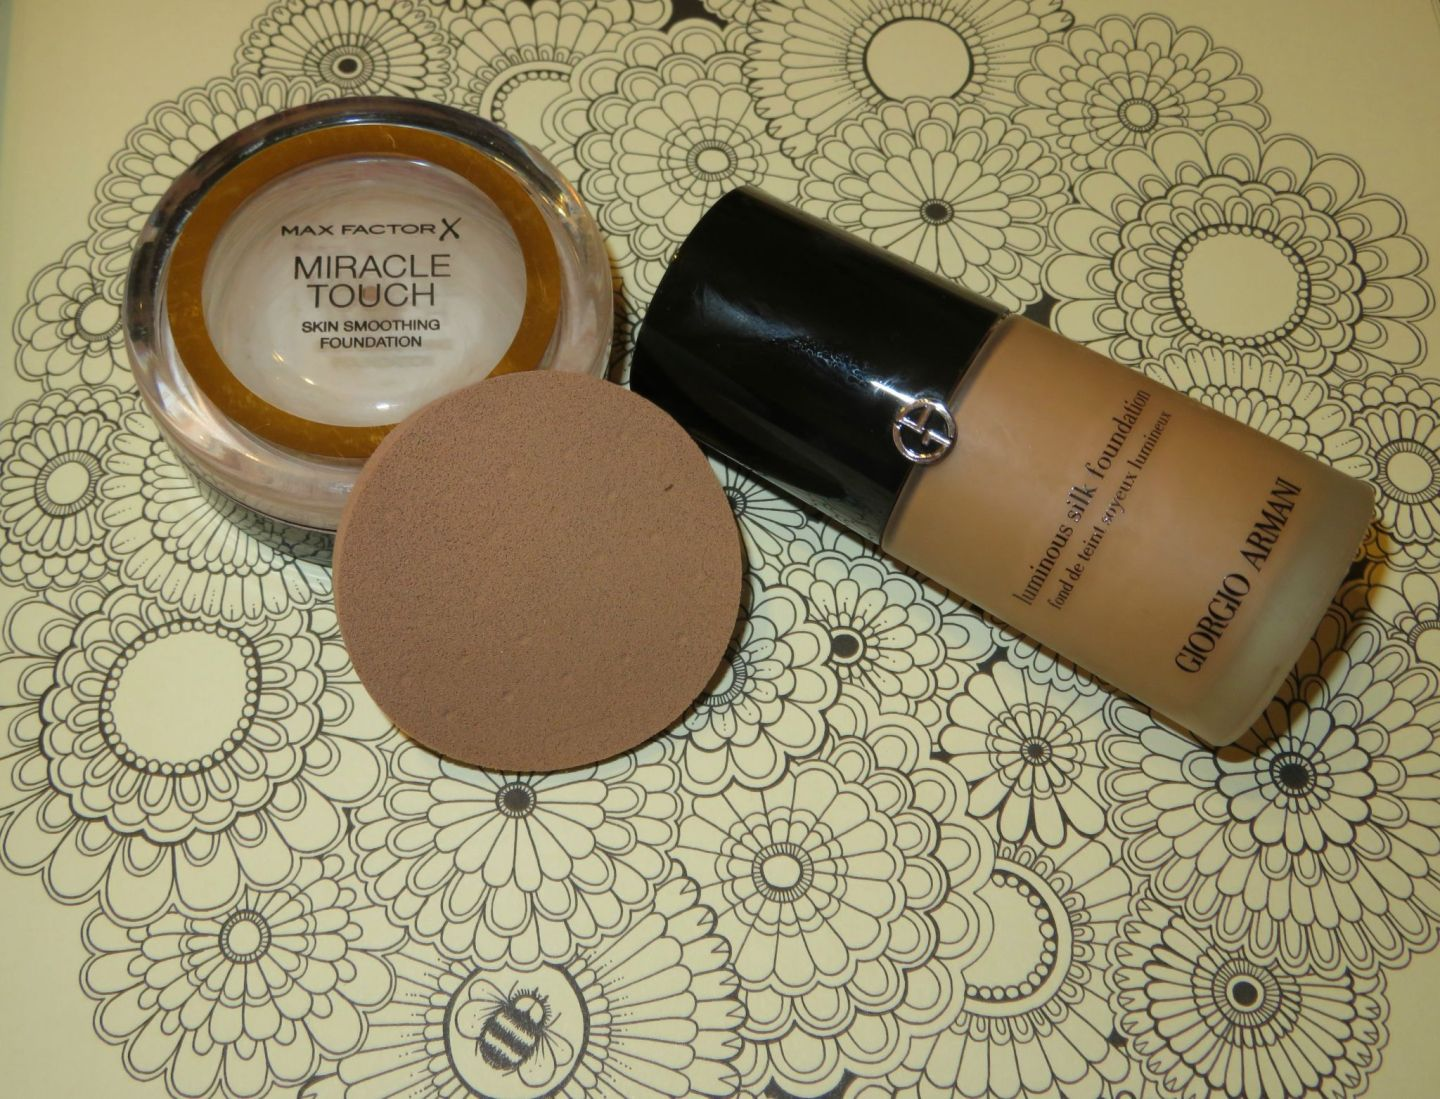 Armani silk luminous foundation